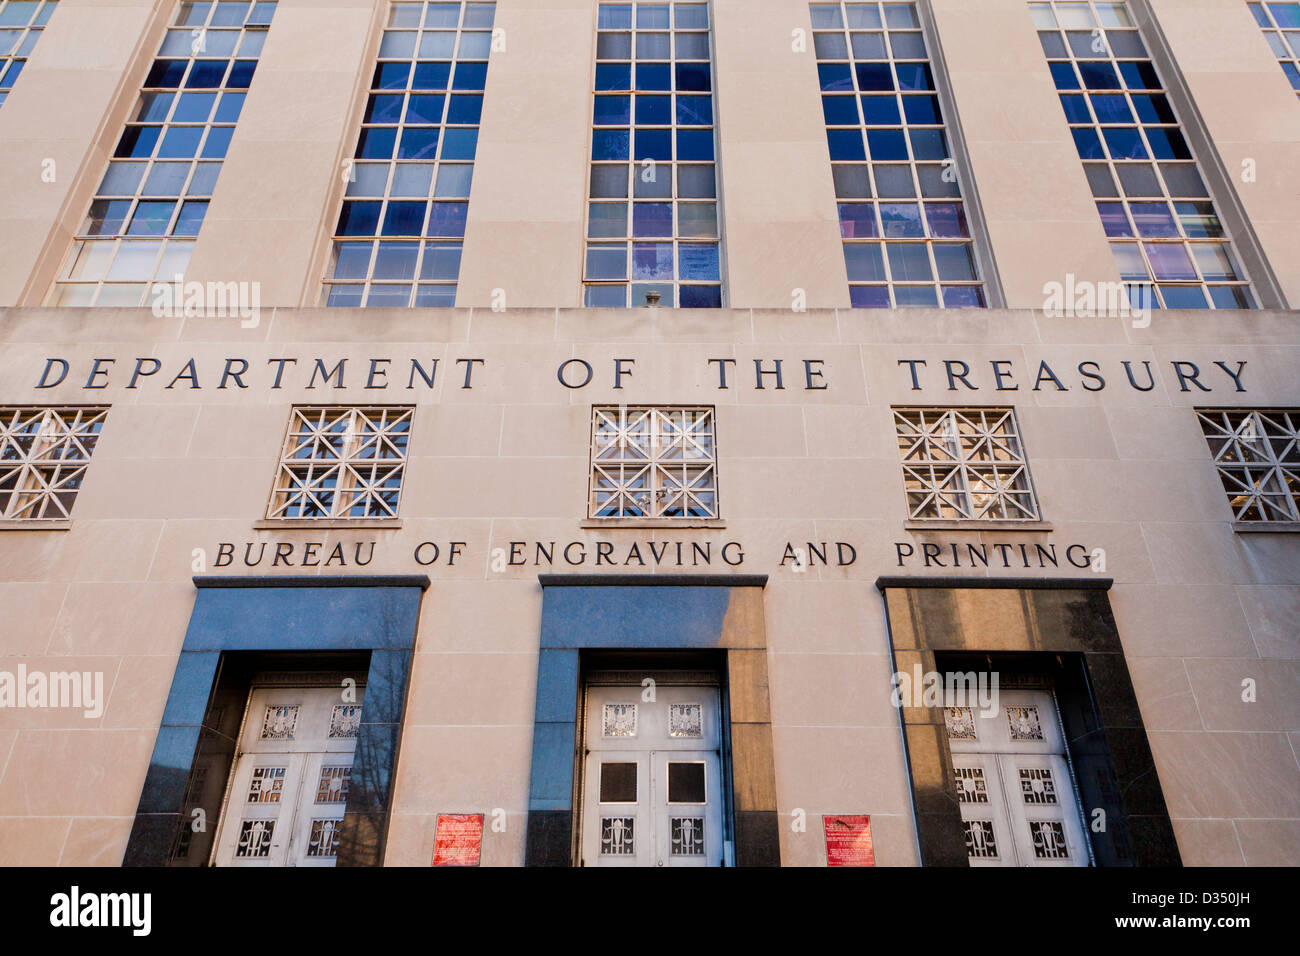 Bureau of engraving and printing department of the treasury stock